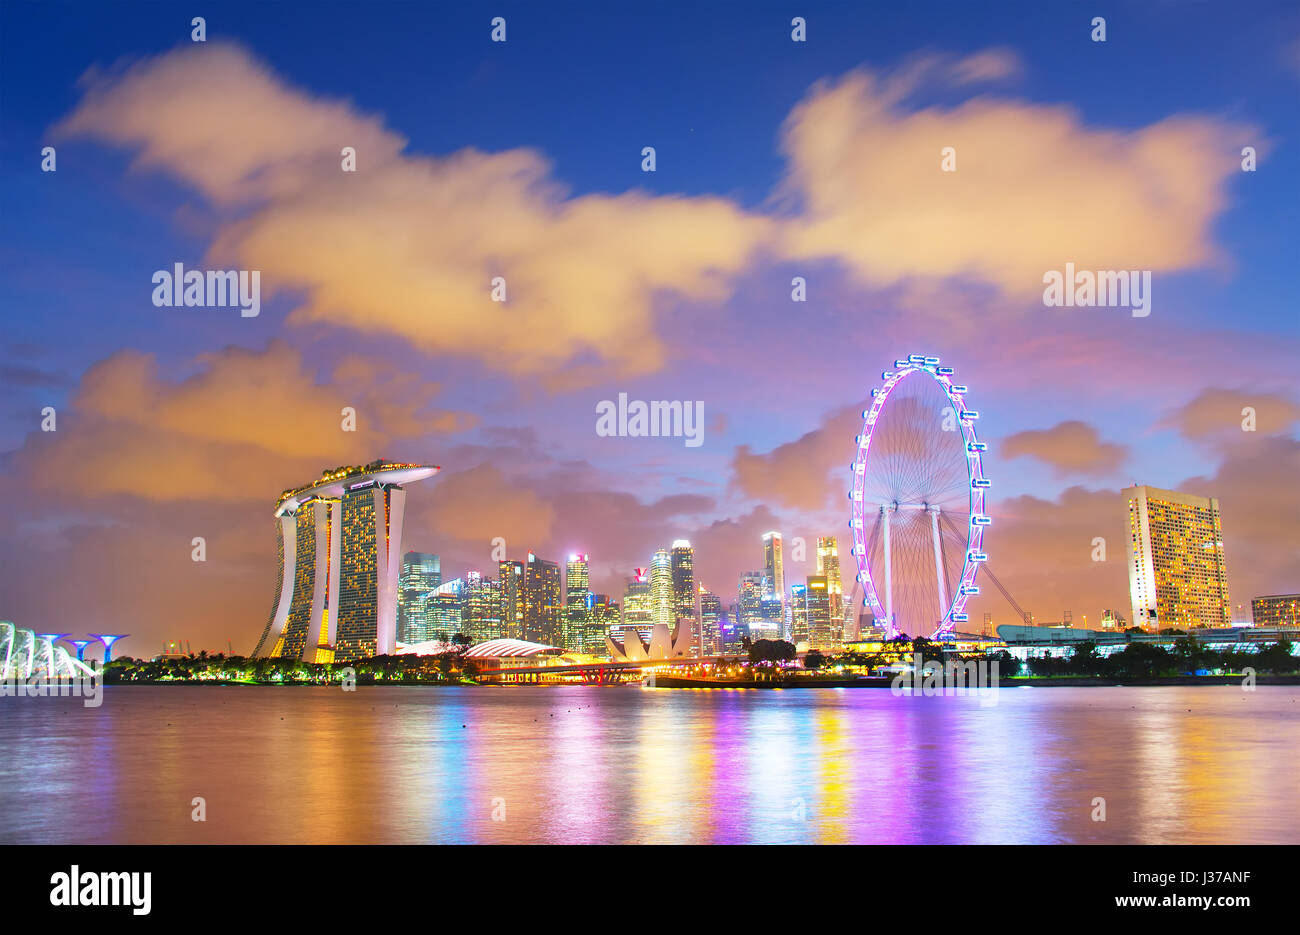 Singapore Downtown Core reflecting in Singapore river at dusk - Stock Image